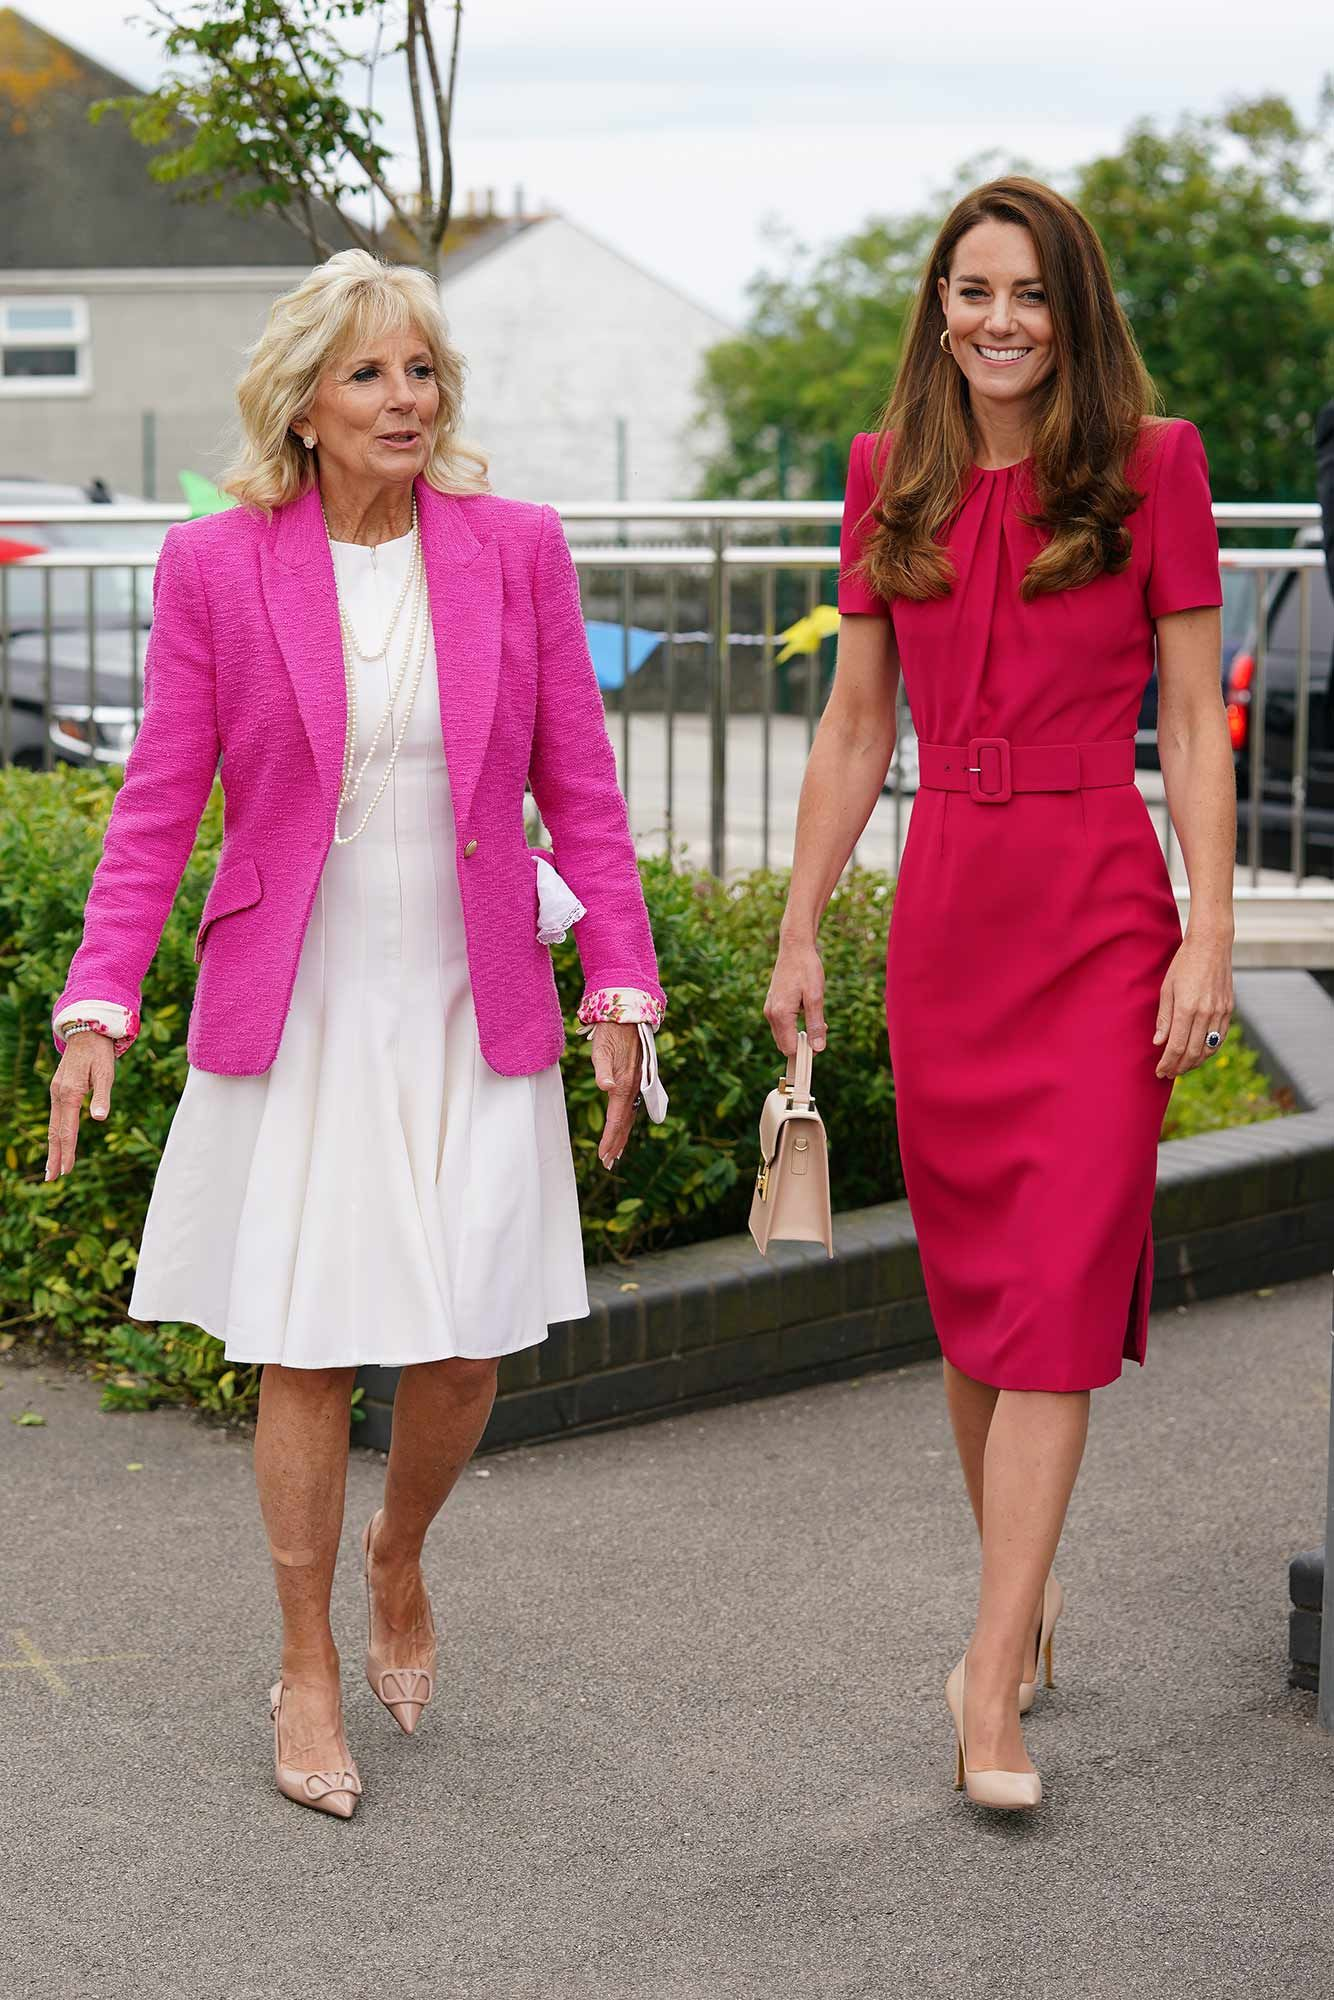 Inside Kate Middleton and Dr. Jill Biden's Meaningful Meeting